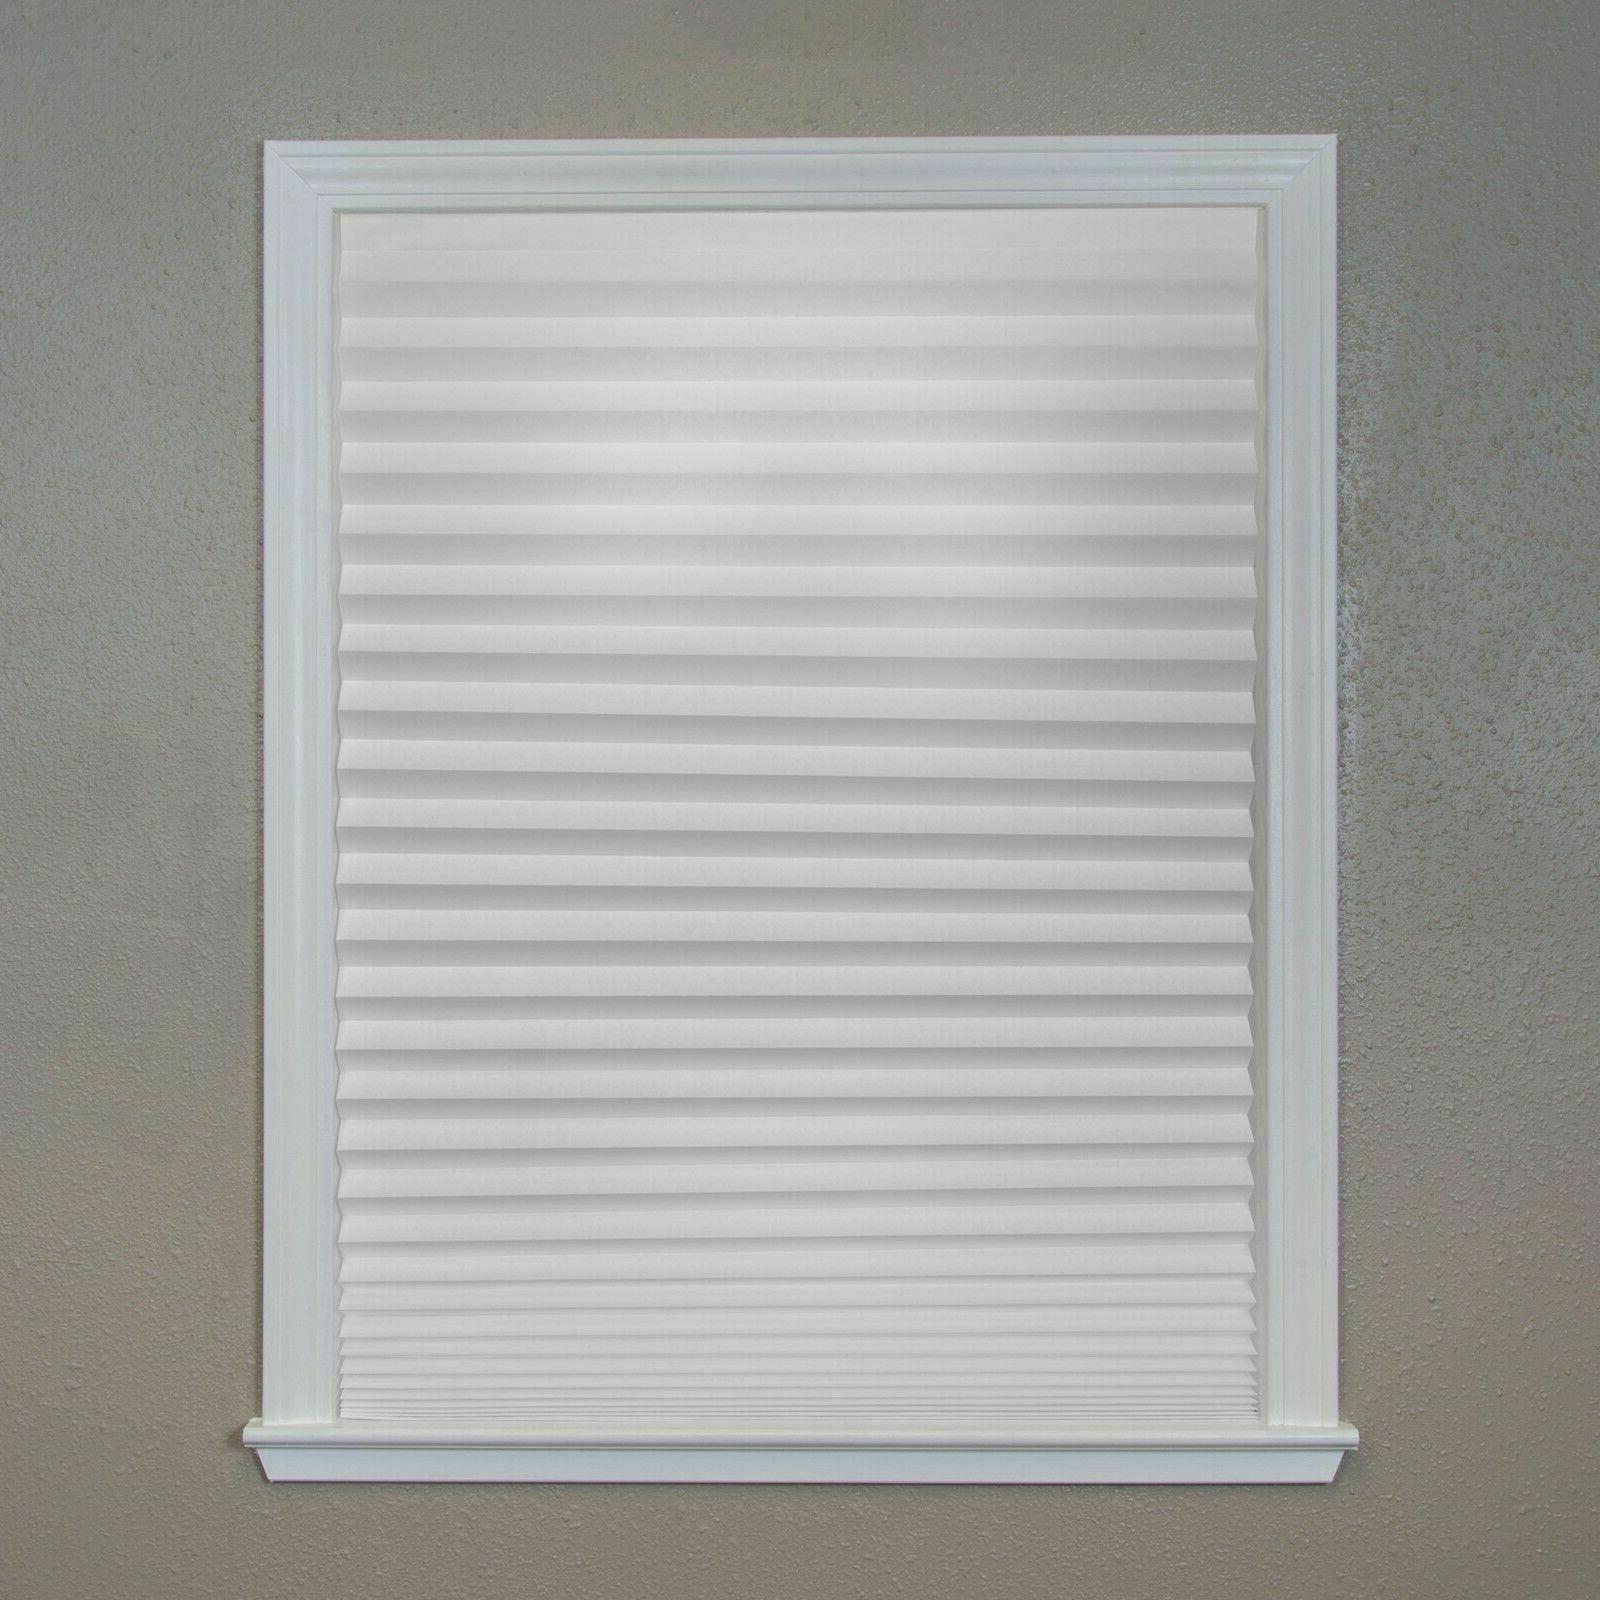 6 Shade X Pleated Paper Filtering Shade Blind